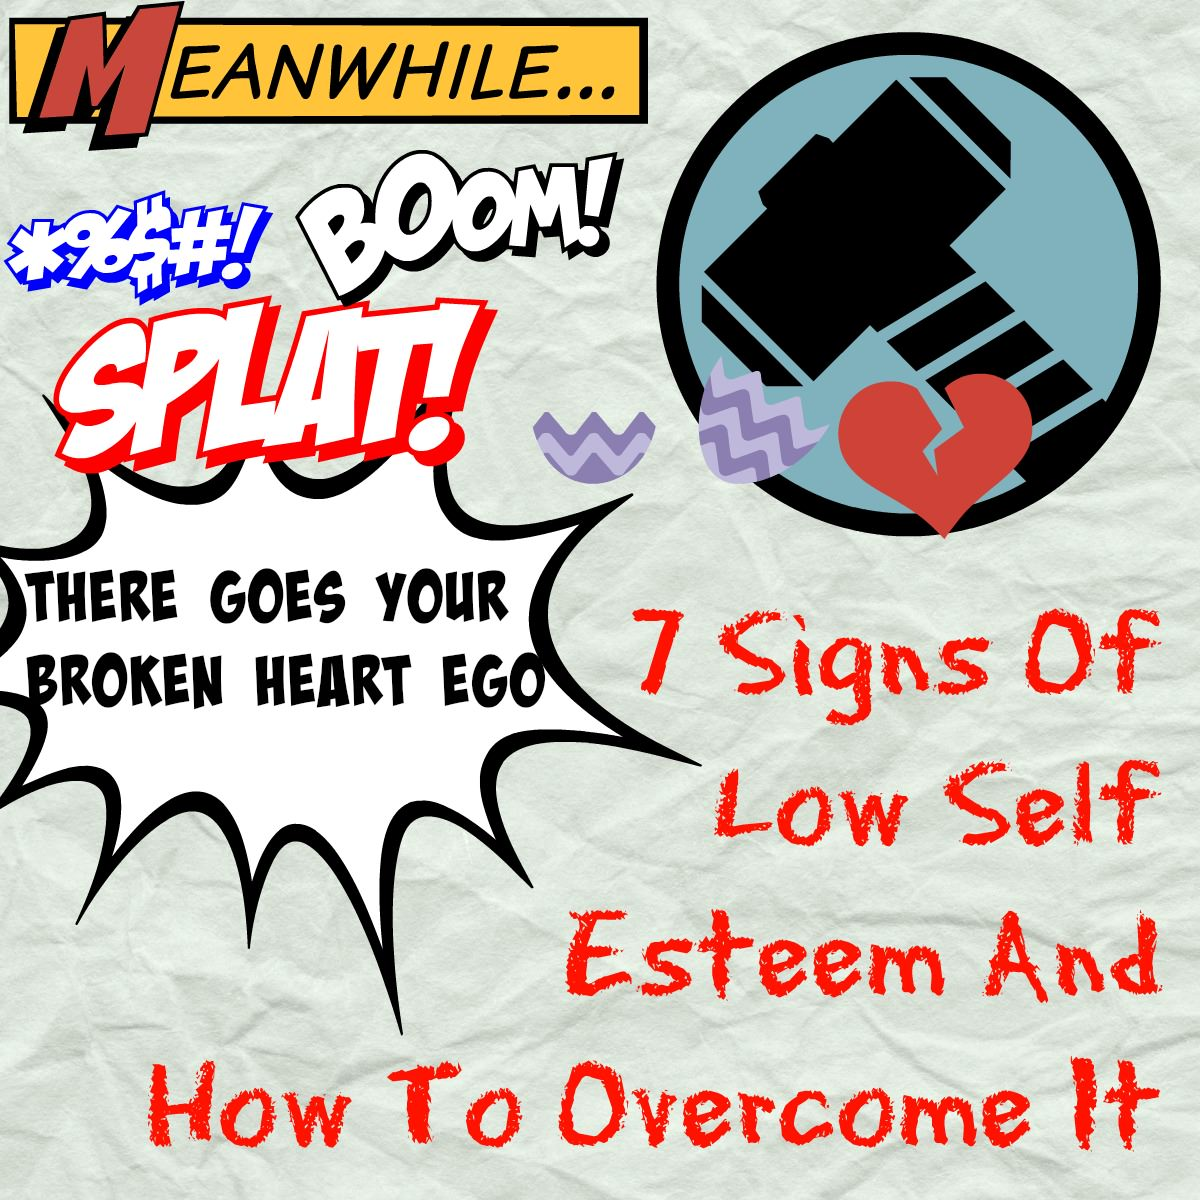 7 Signs Of Low Self Esteem And How To Overcome It